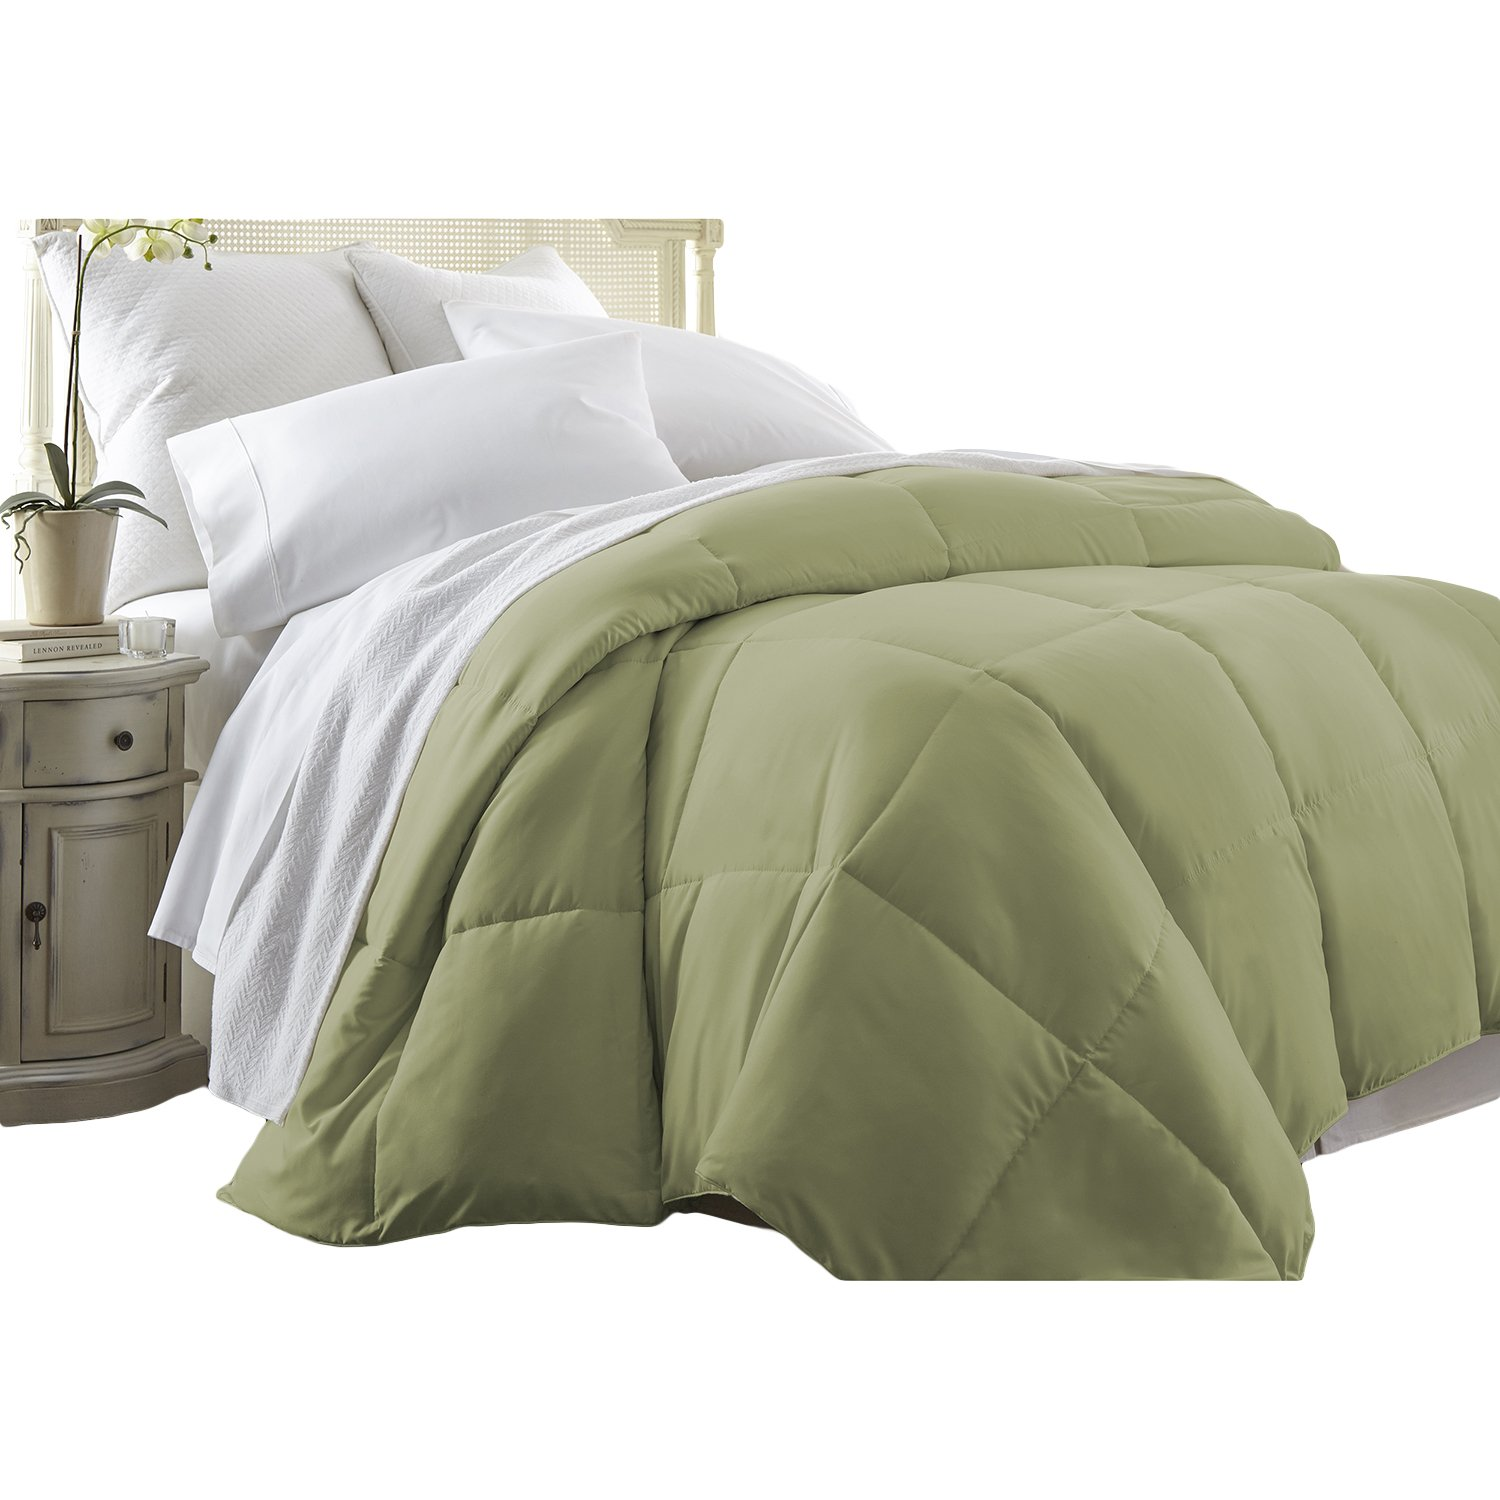 bedding down xl navy duvets comforters covers and alternative sets c twin comforter duvet